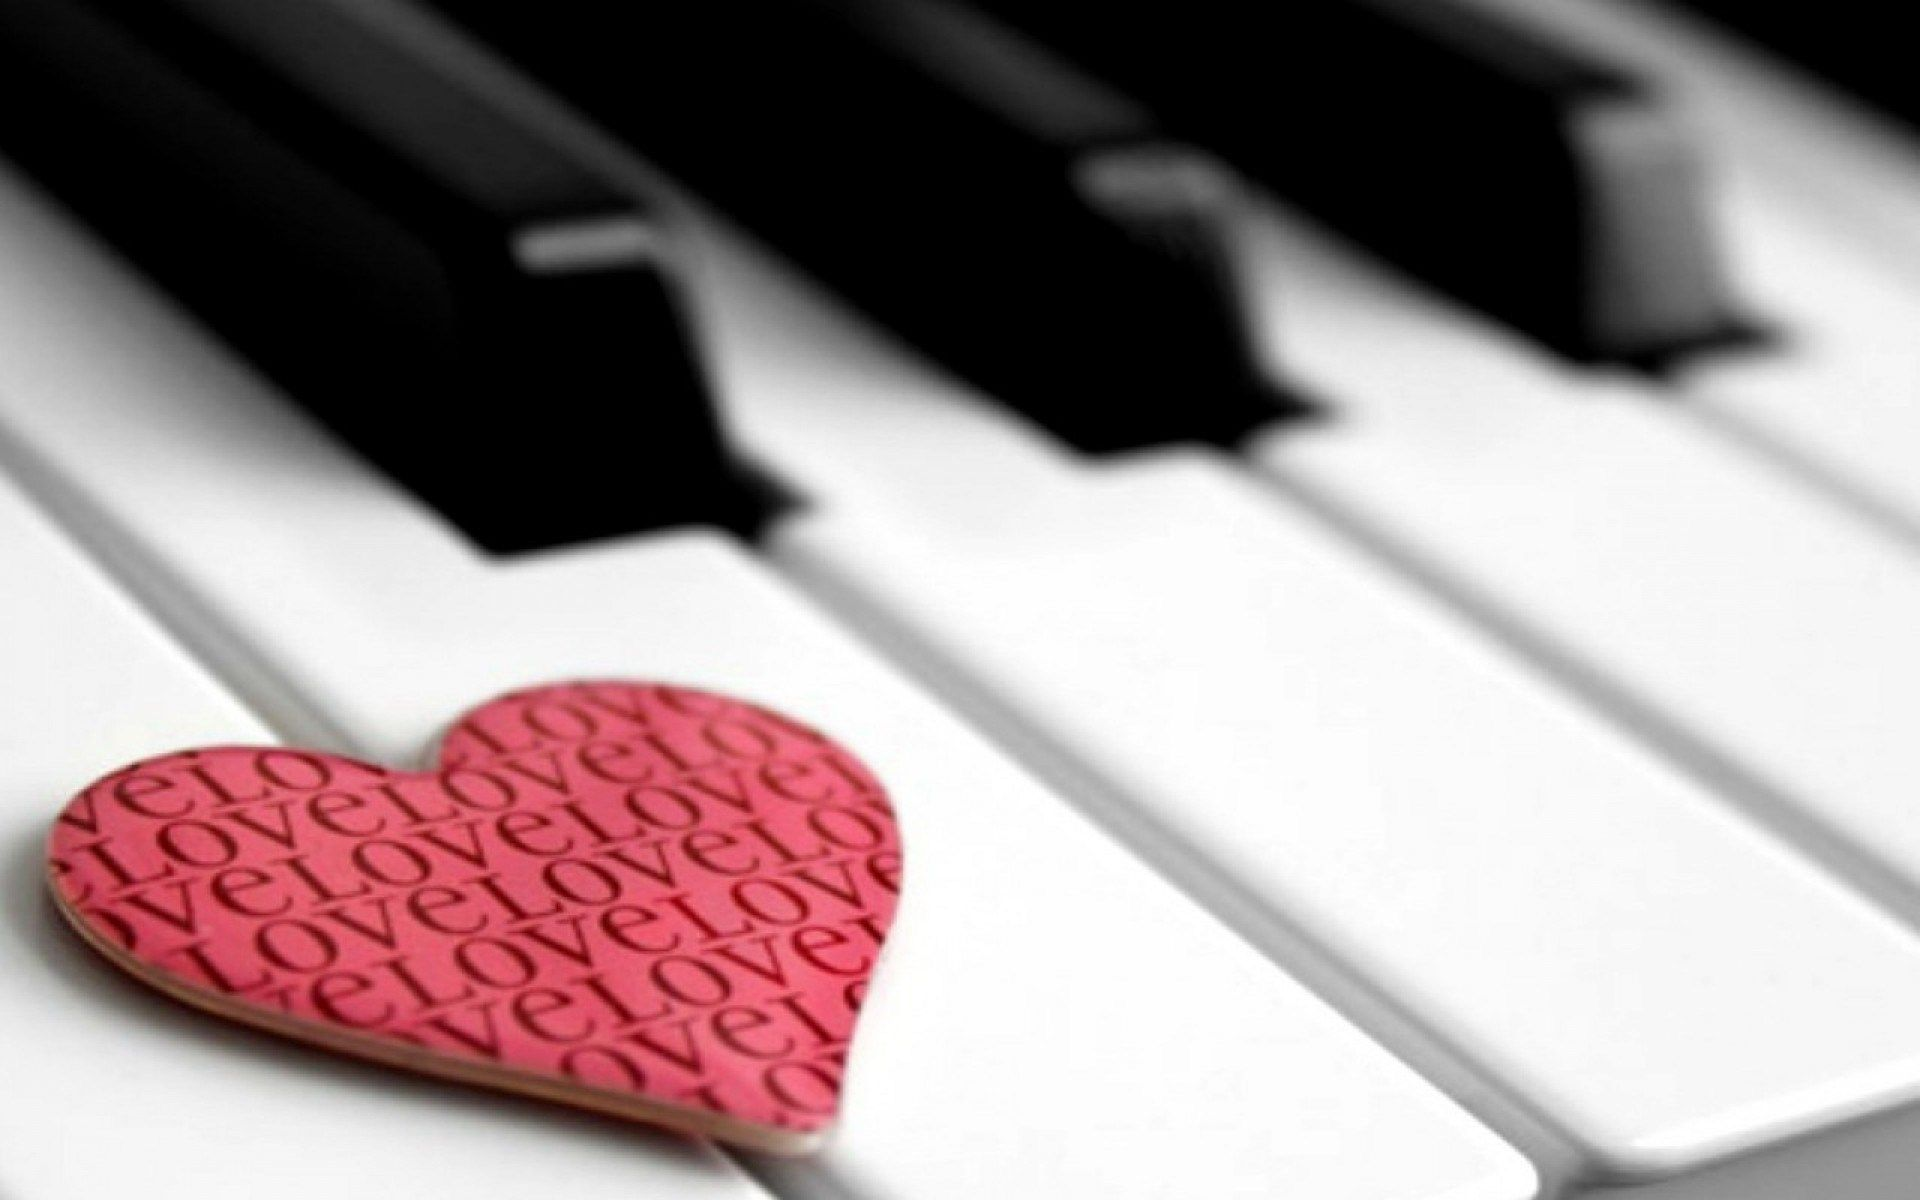 Piano Hd Wallpapers Free Download Hd Free Wallpapers Download Music